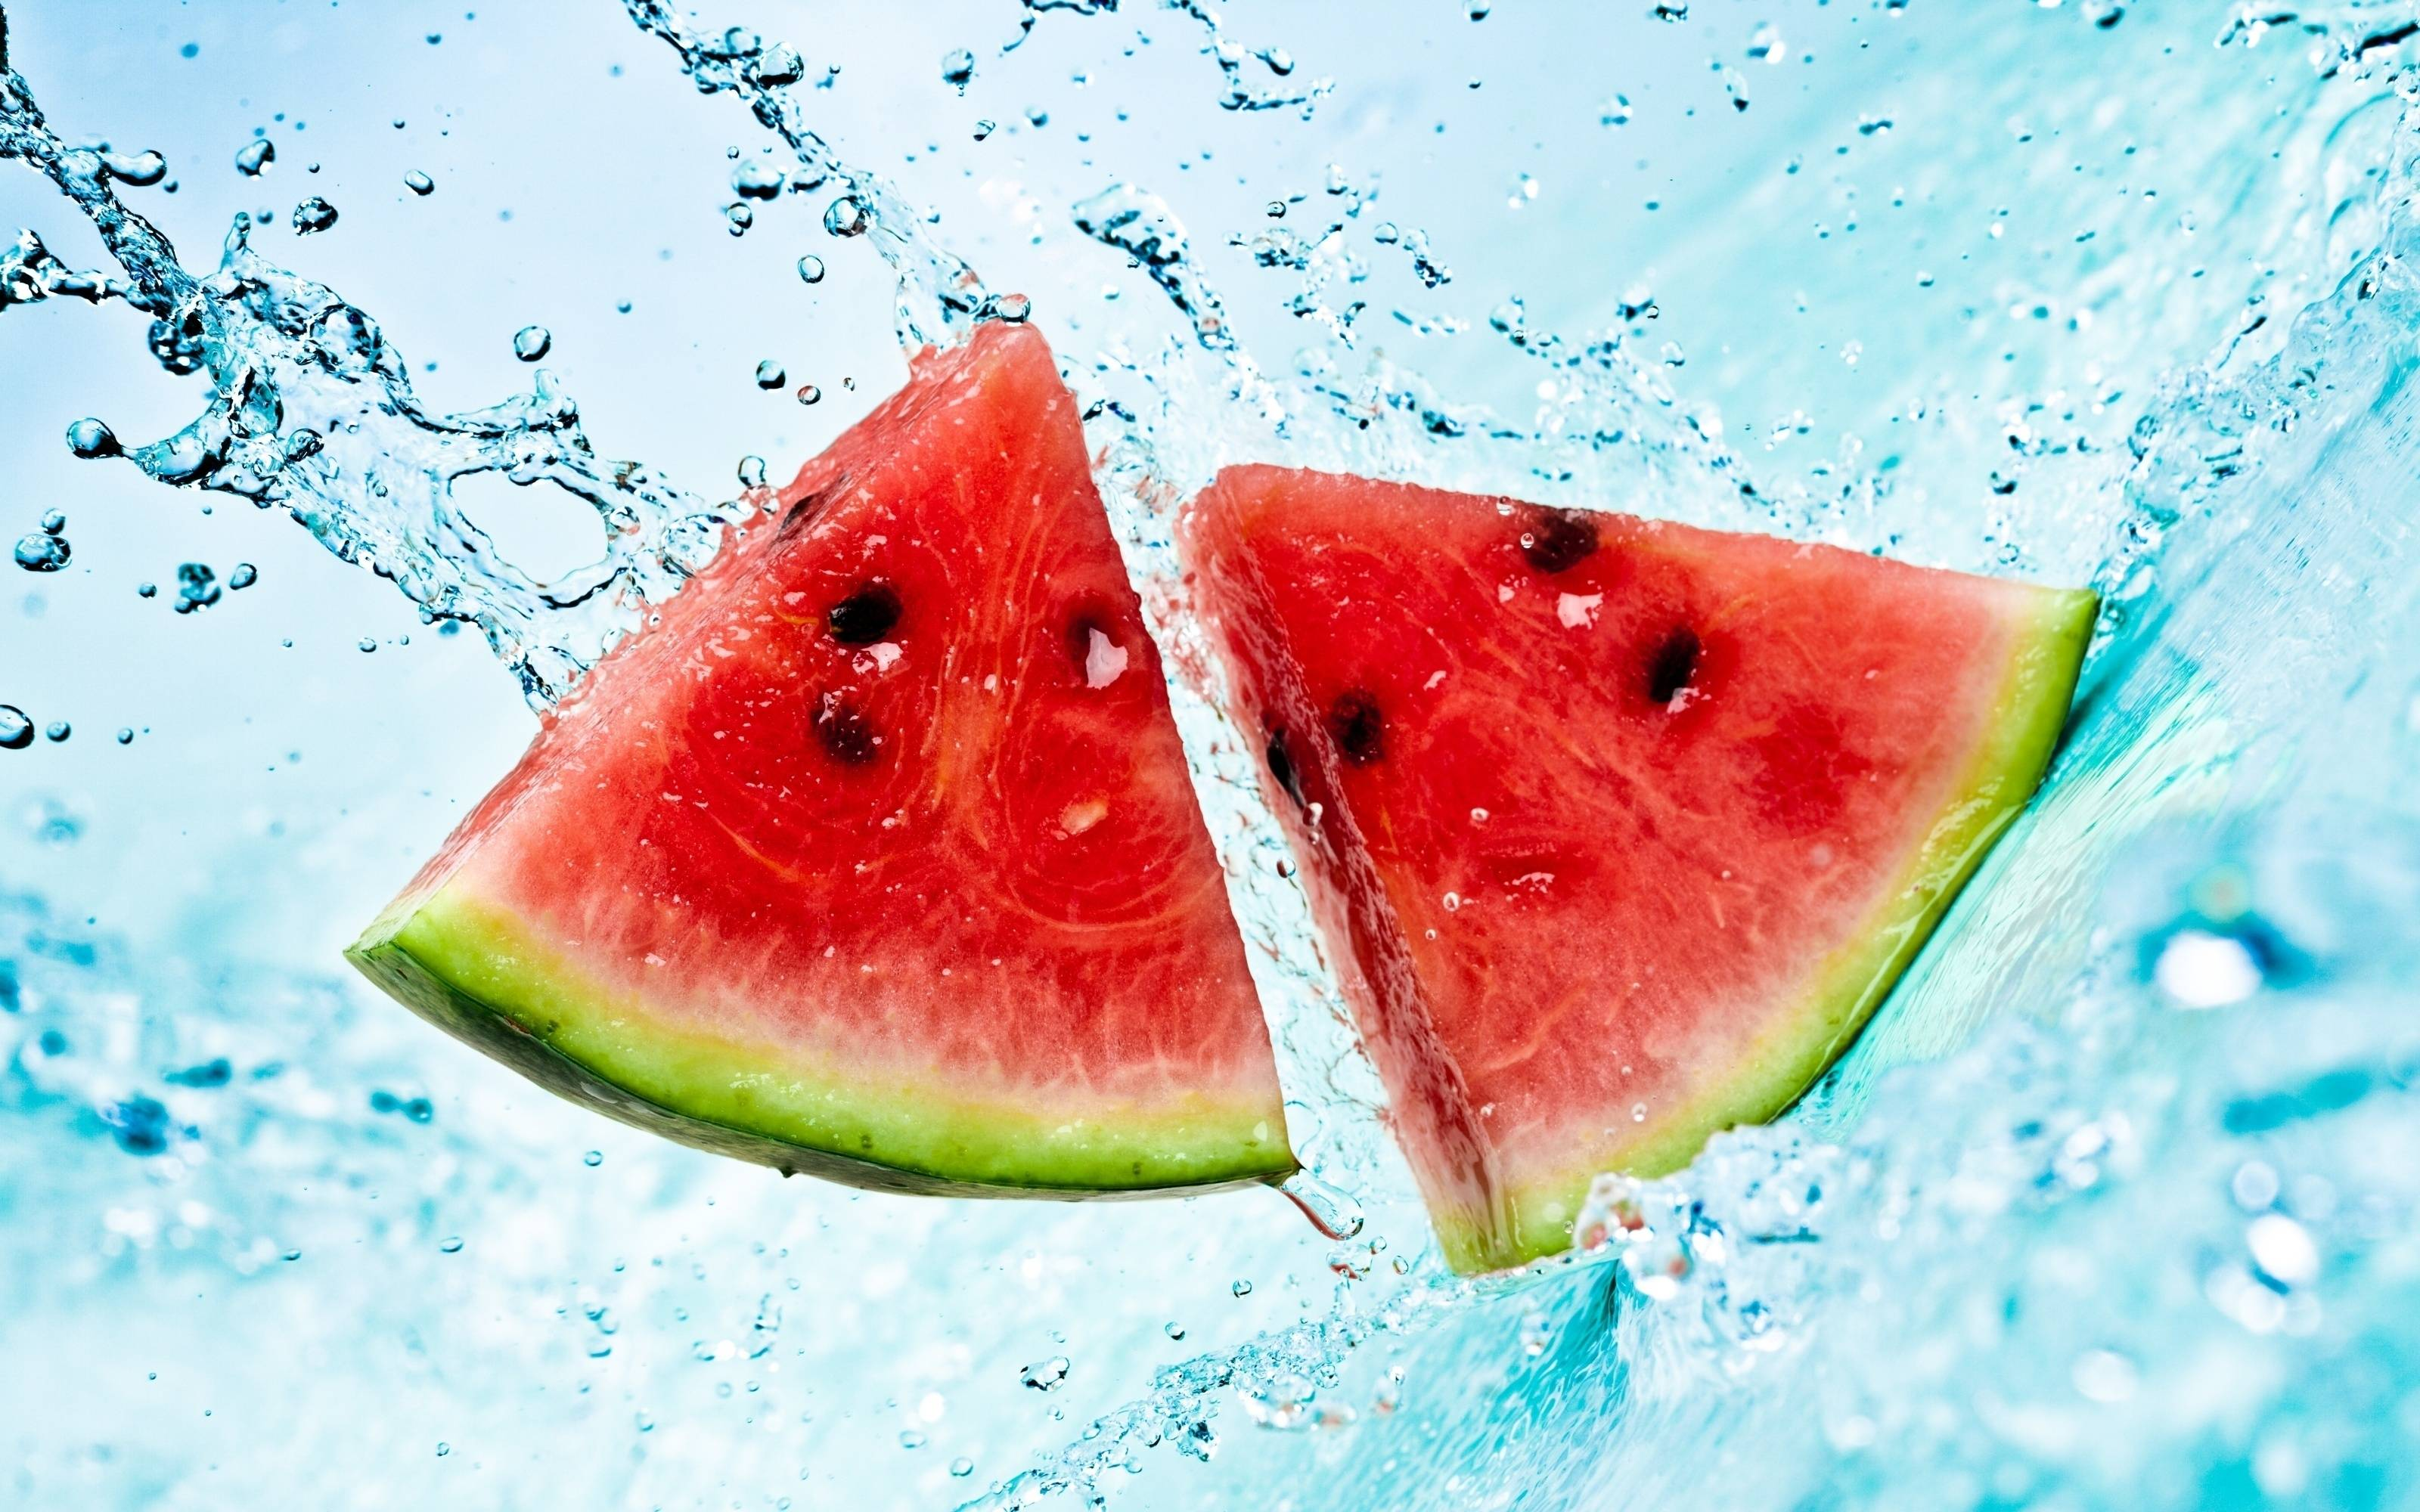 Best 53+ Watermelon Wallpapers on HipWallpapers